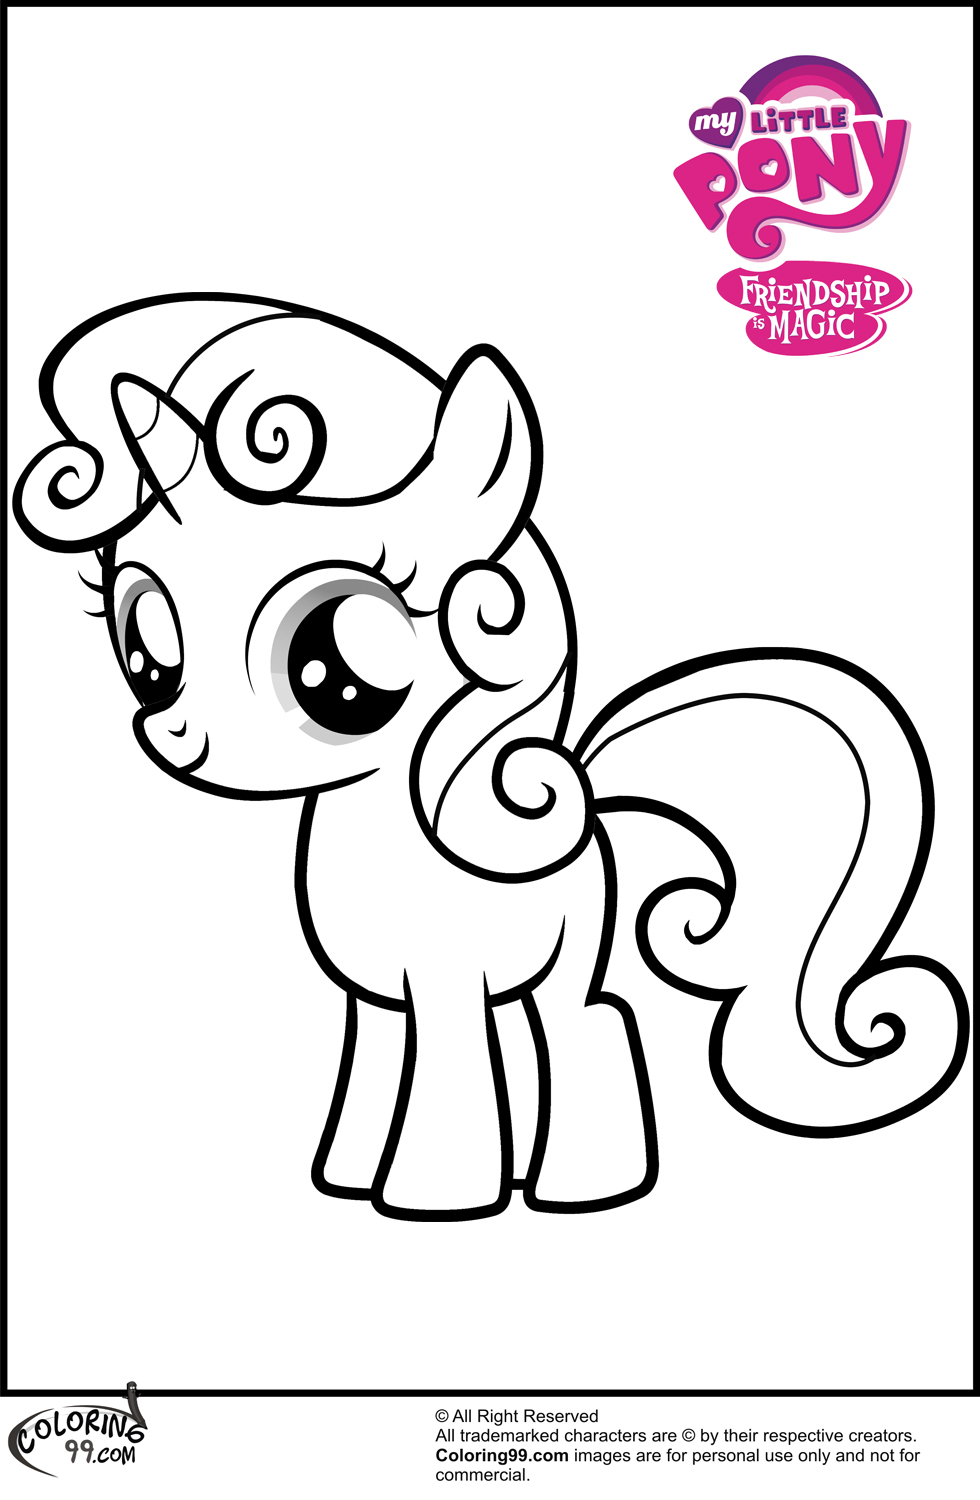 MLP Sweetie Belle Coloring Pages | Minister Coloring